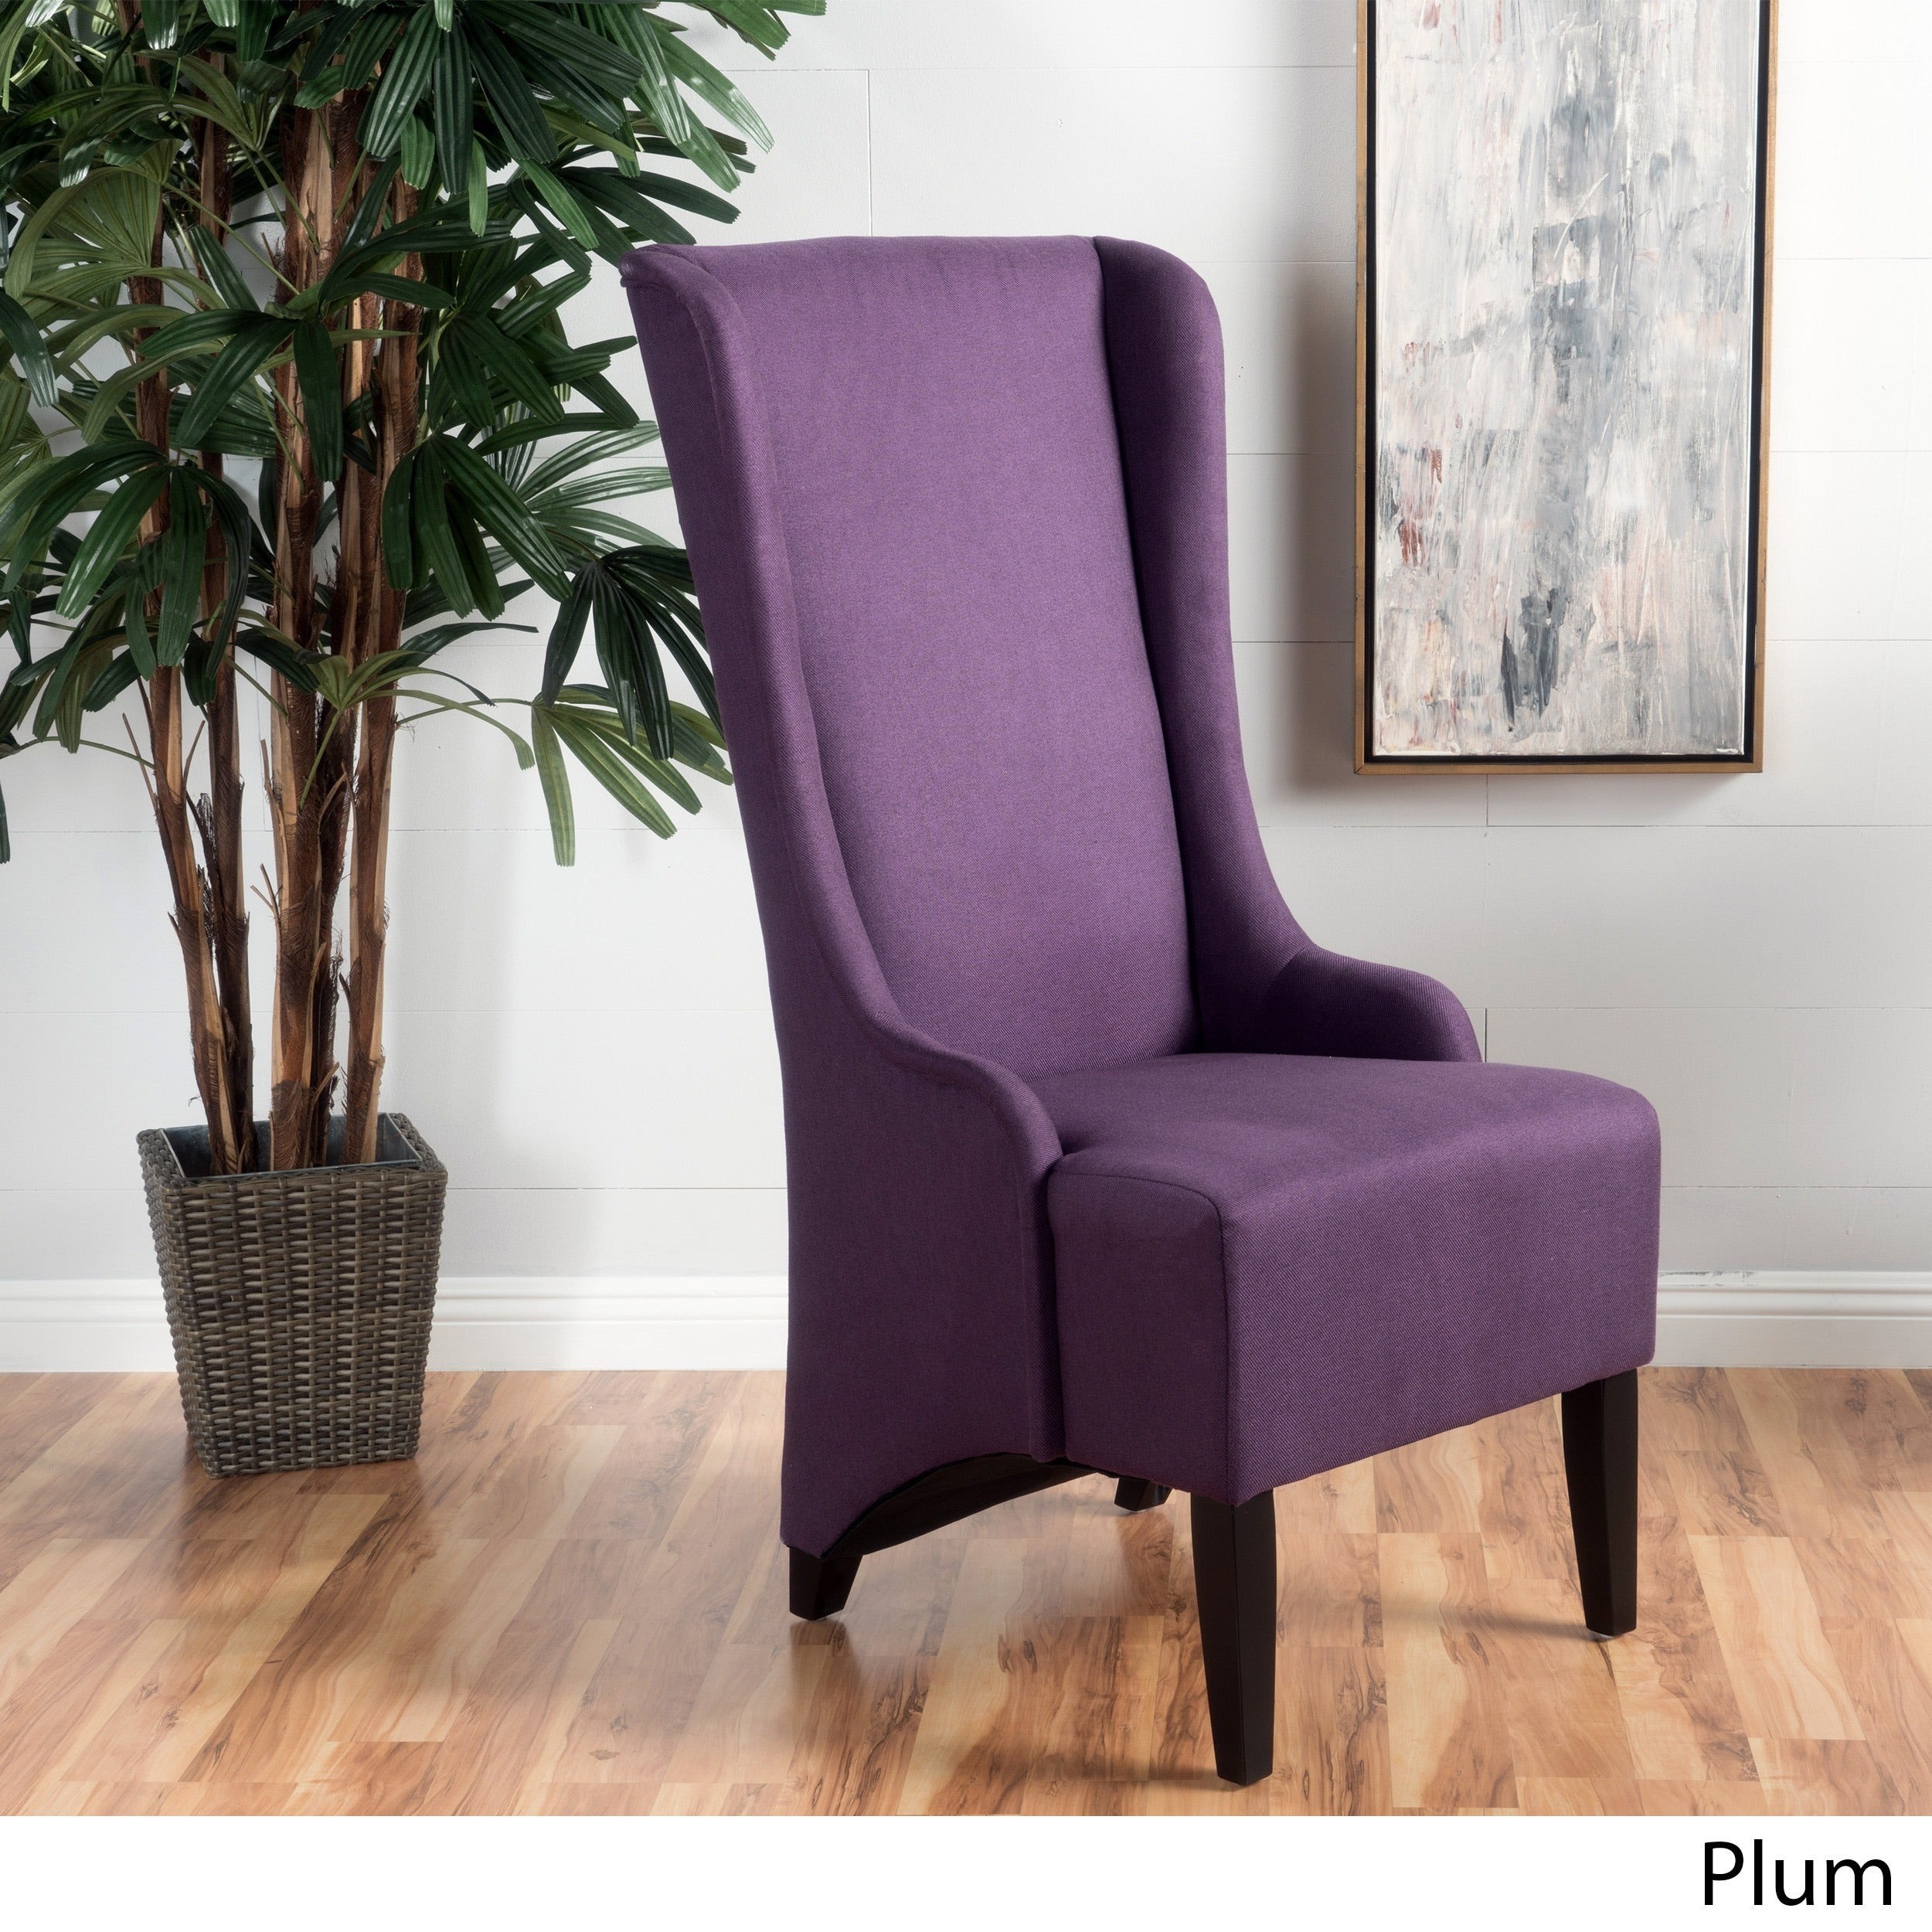 Dining Chairs Fabric High Back Seriena High Back Dining Chair in